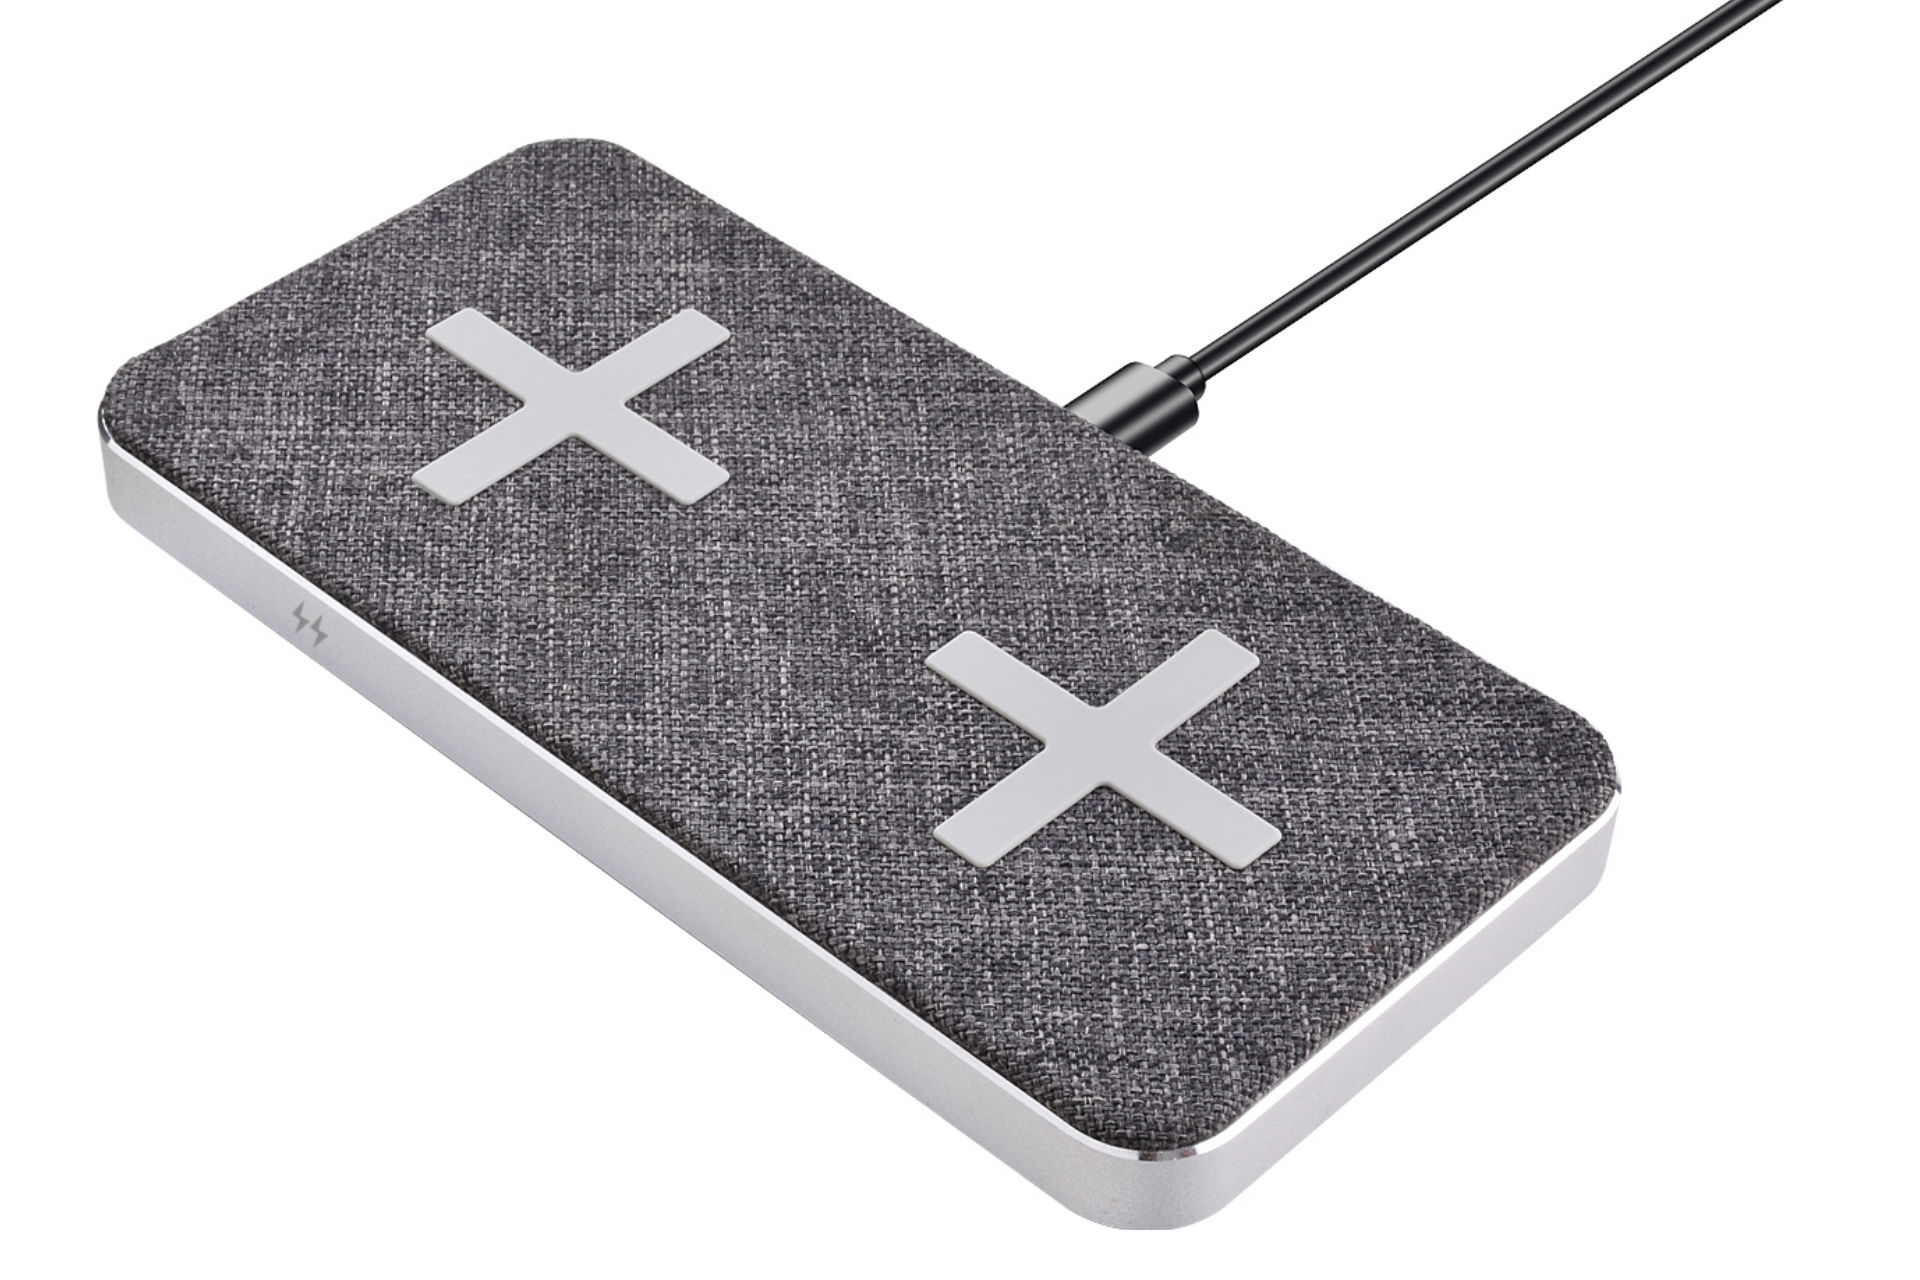 Bluehive fabric dual charging pad